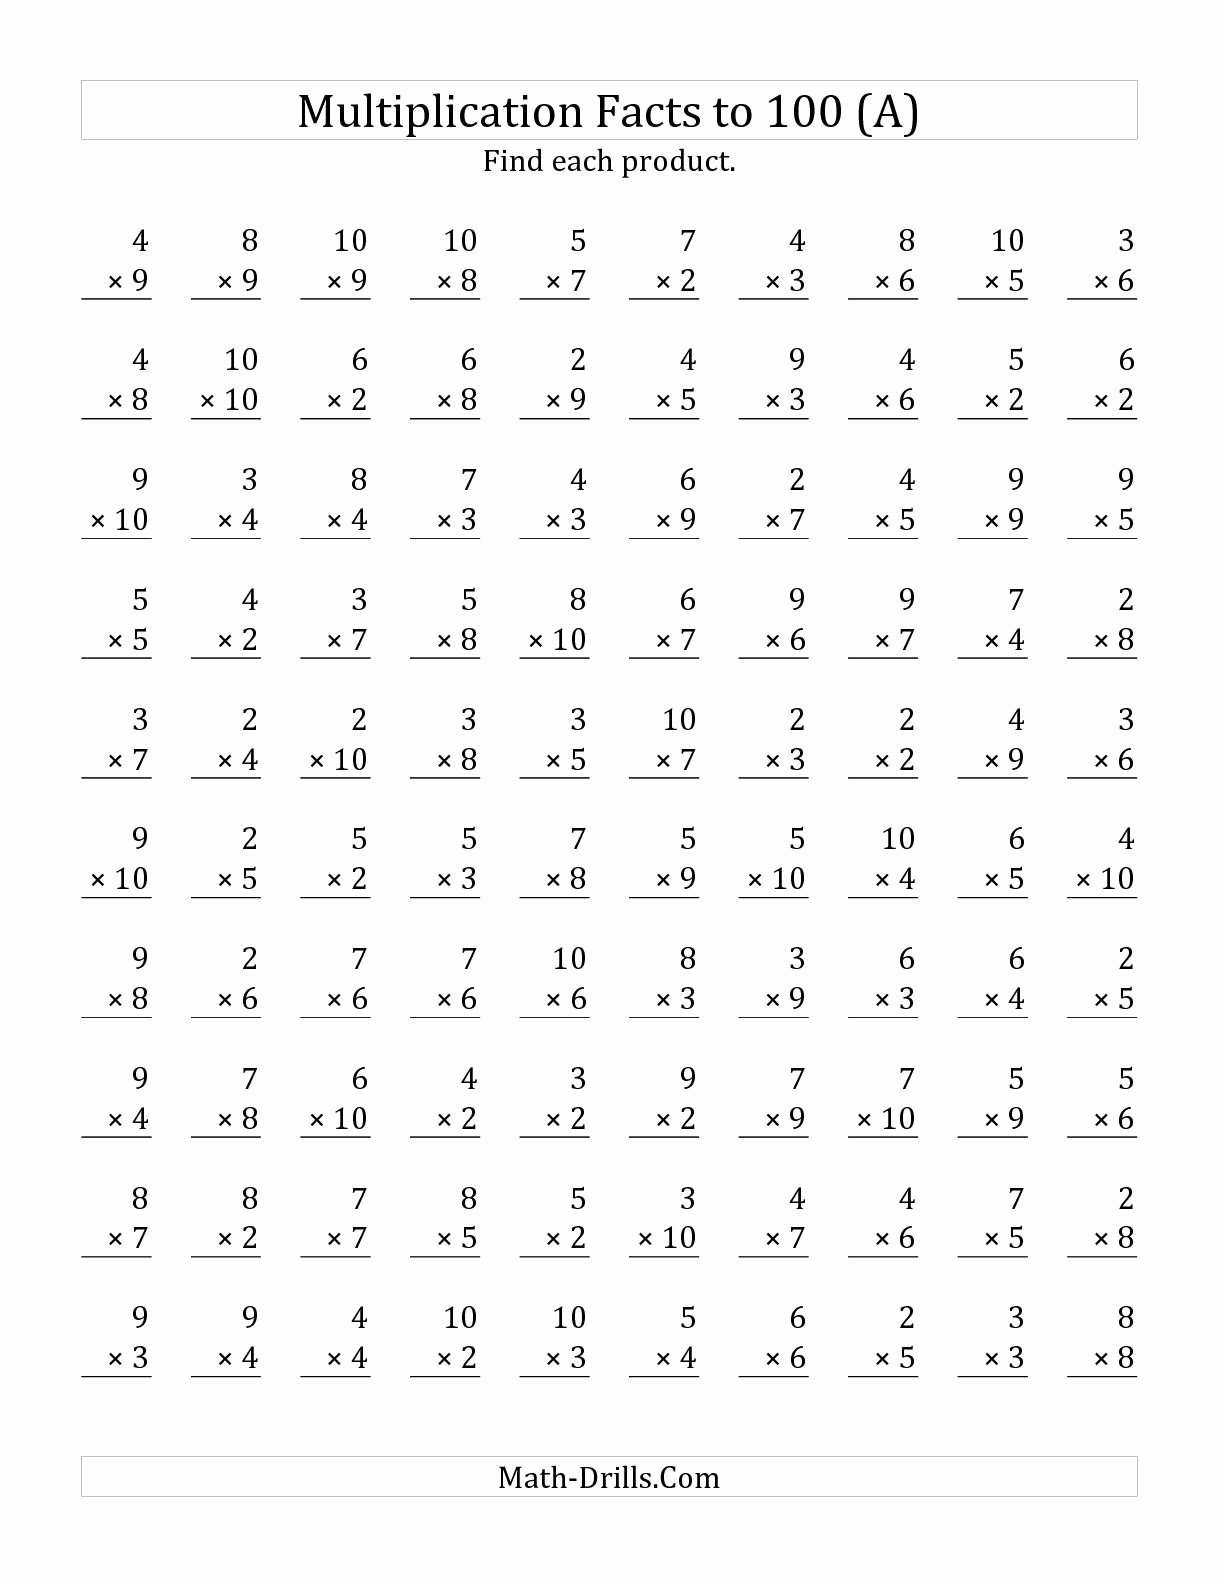 Free 4th Grade Multiplication Worksheets Awesome the Multiplication Facts to 100 No Zeros or Es All Math